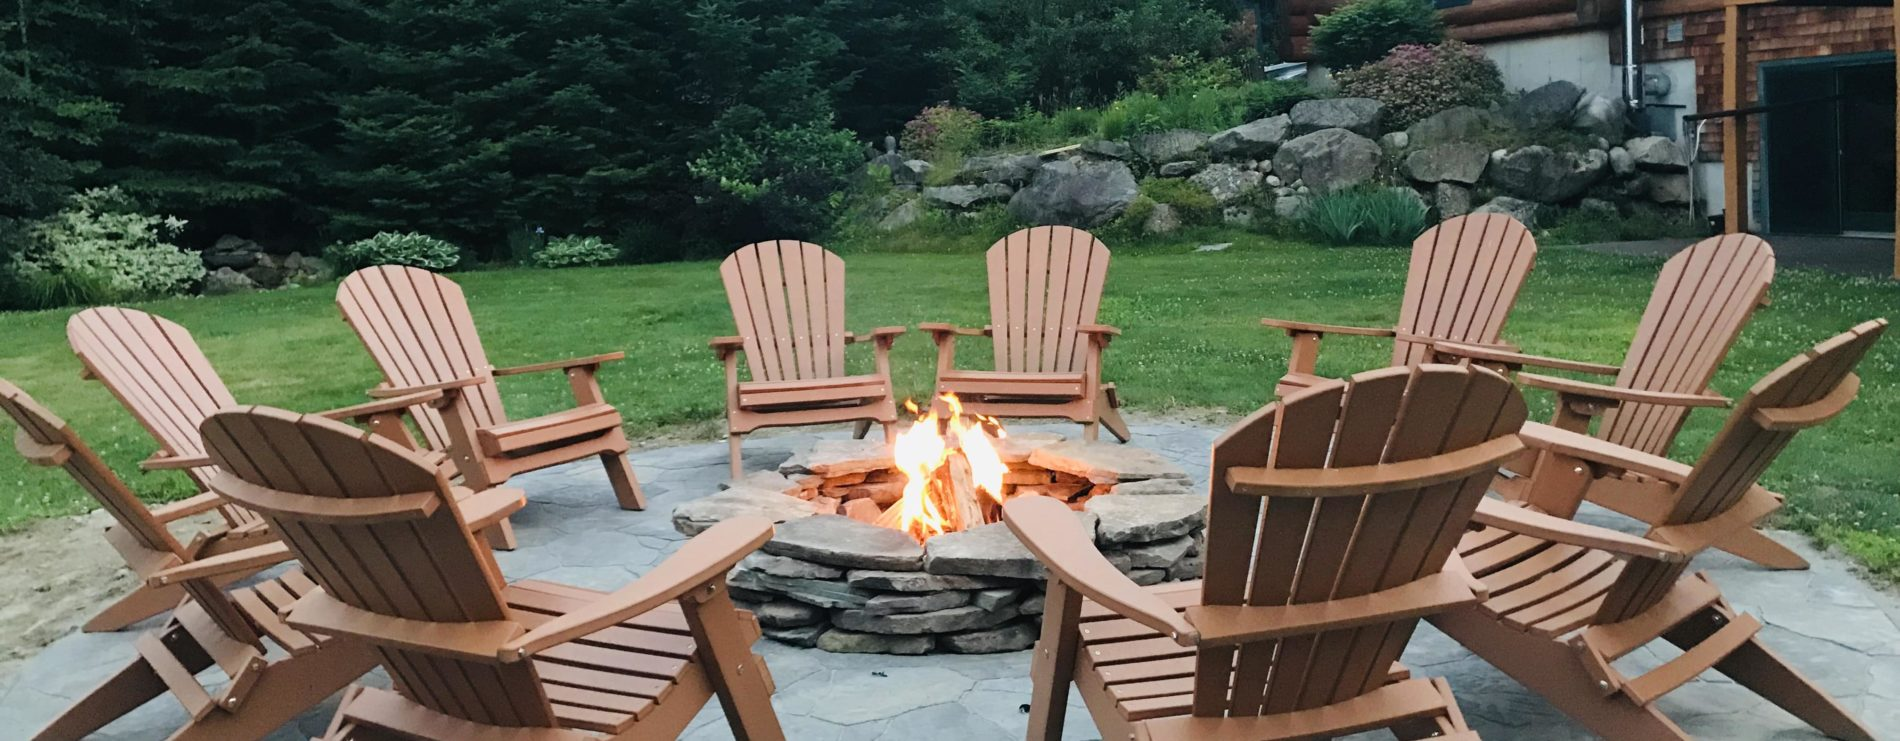 Ten brown Adirondack chairs circling a fire pit on an outdoor stone patio